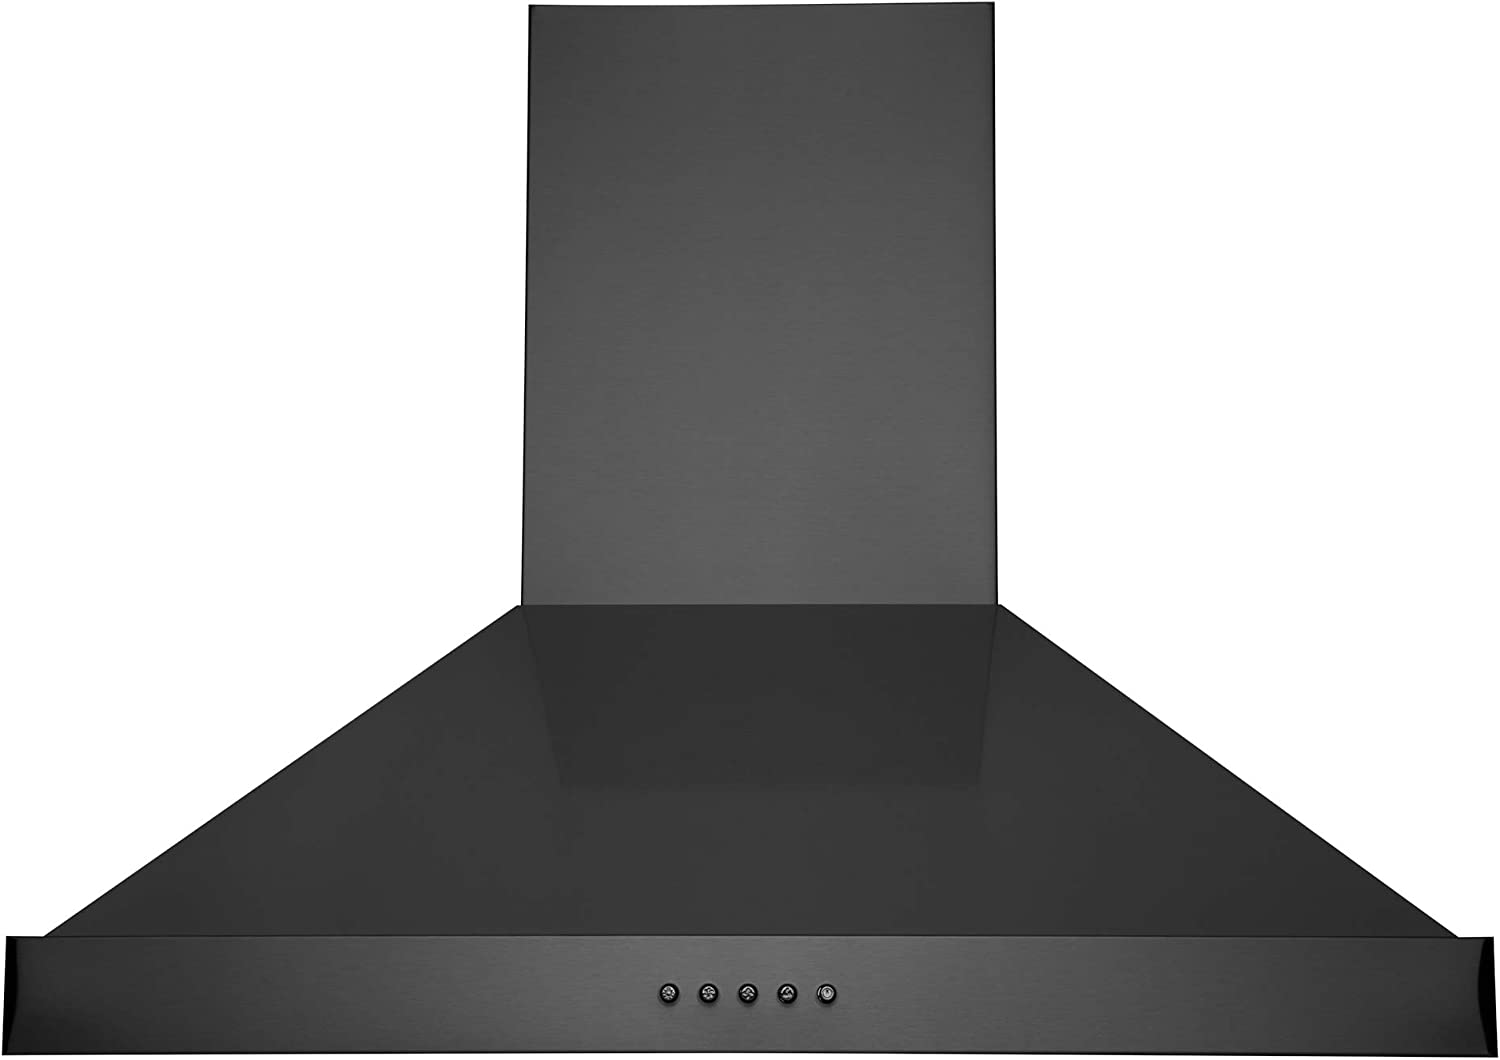 """Hauslane   Chef Series 30"""" WM-590   Black Stainless Steel Fingerprint and Smudge Resistant   3 Speed Wall - Mount Kitchen Fan   Easy Clean Baffle Filters, LED   Duct or Ductless Options"""